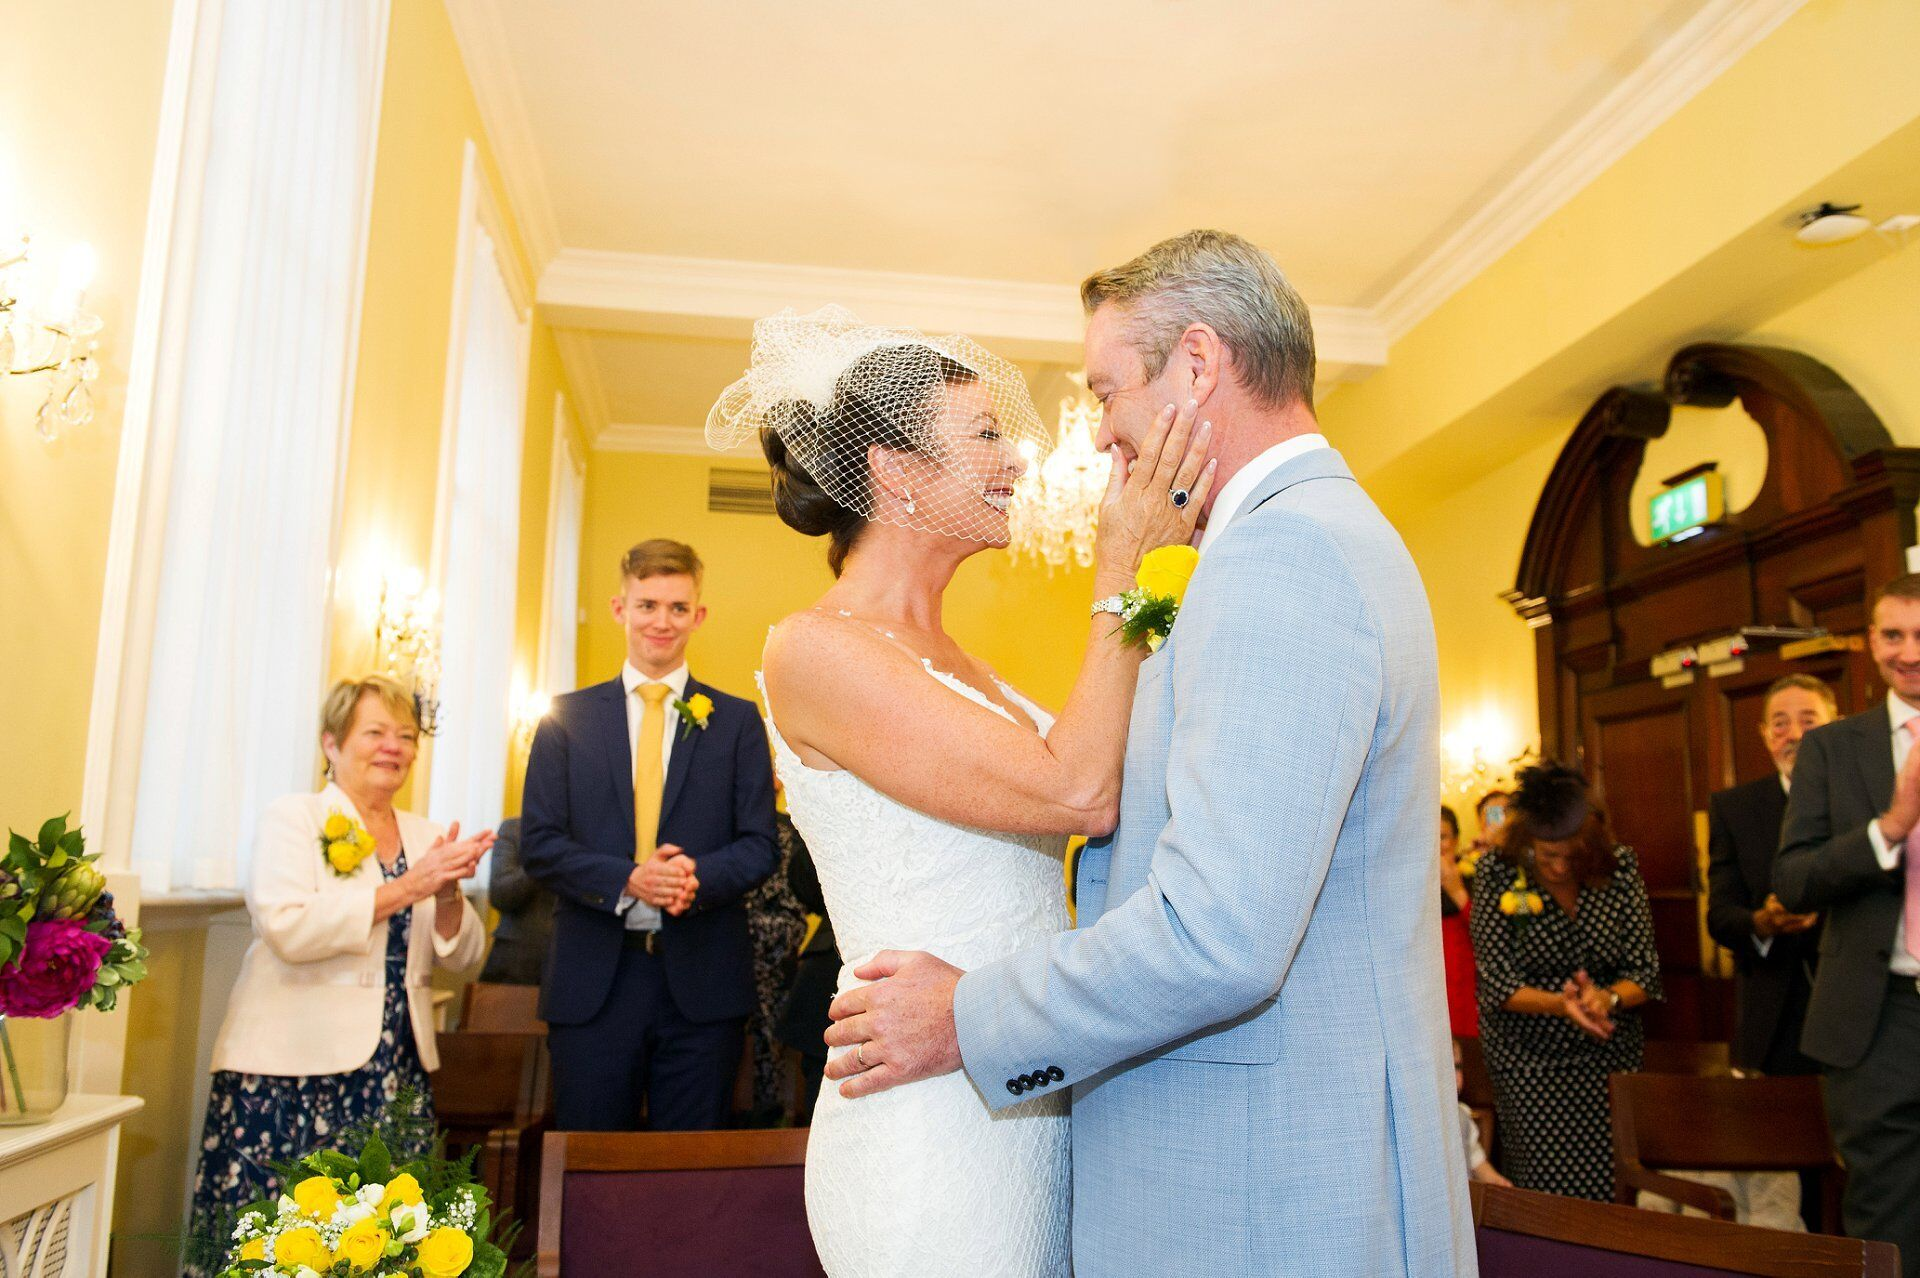 Ivy Chelsea Garden wedding photographer Emma Duggan just married in the Brydon Room, Chelsea Old Town Hall